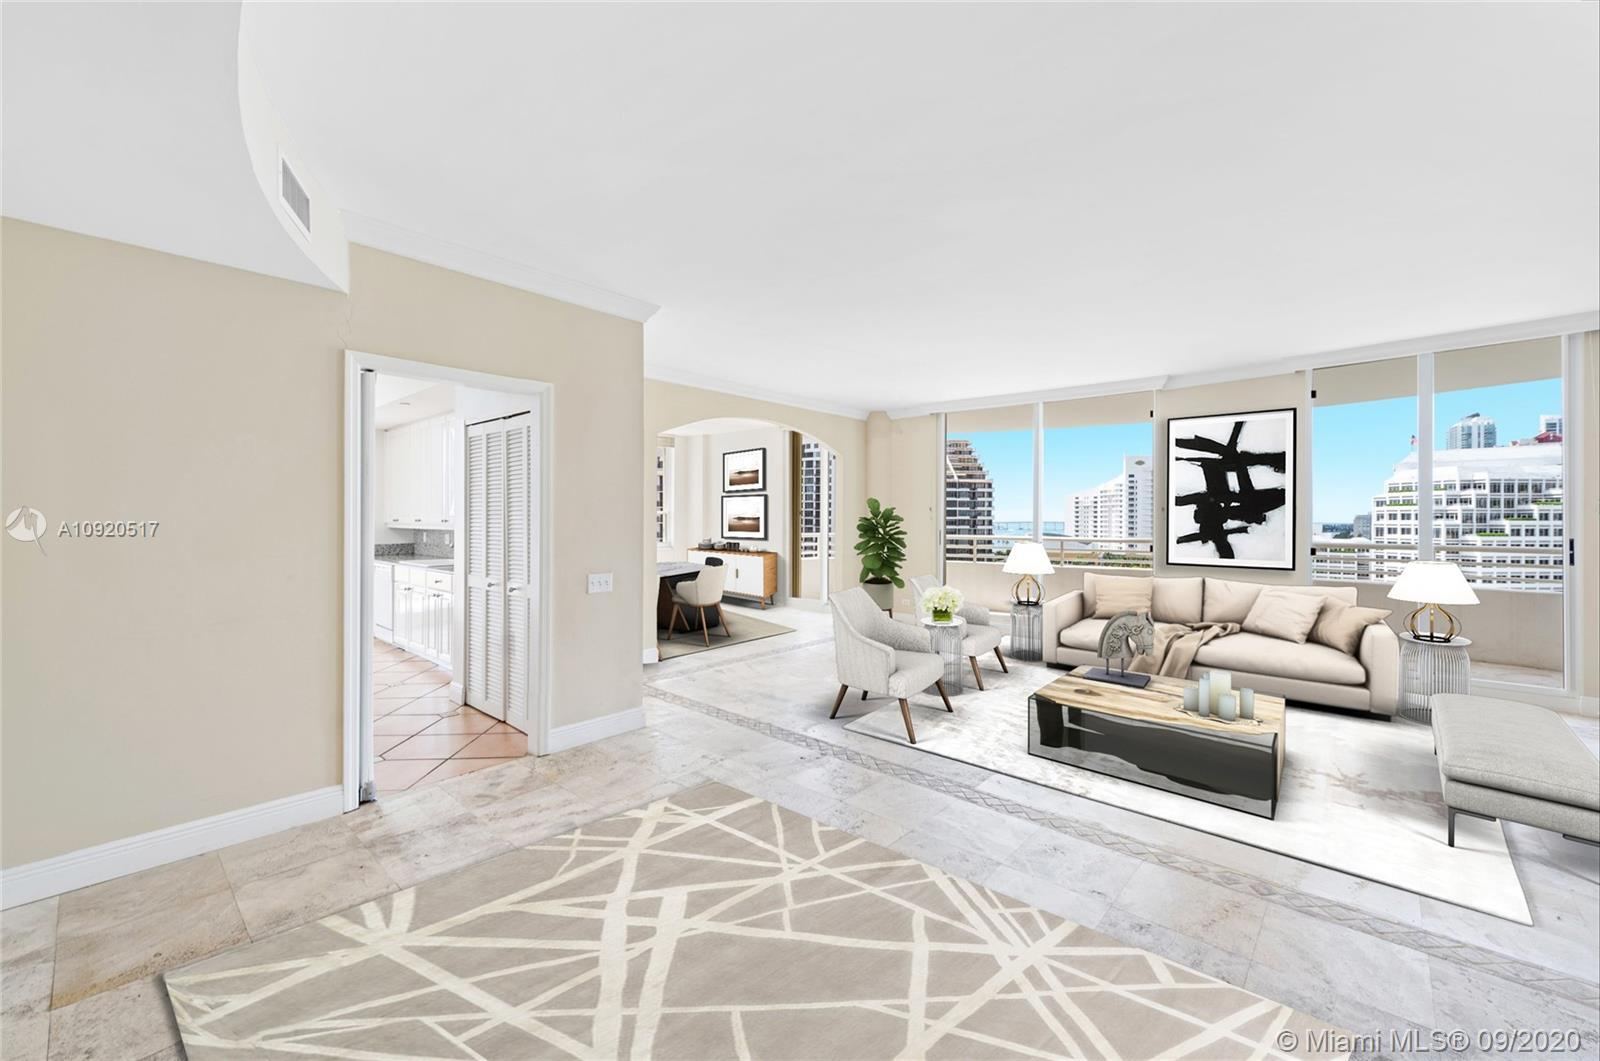 Beautiful 3 Bedroom, 3 Bathroom residence at the prestigious One Tequesta Point Condo located in the